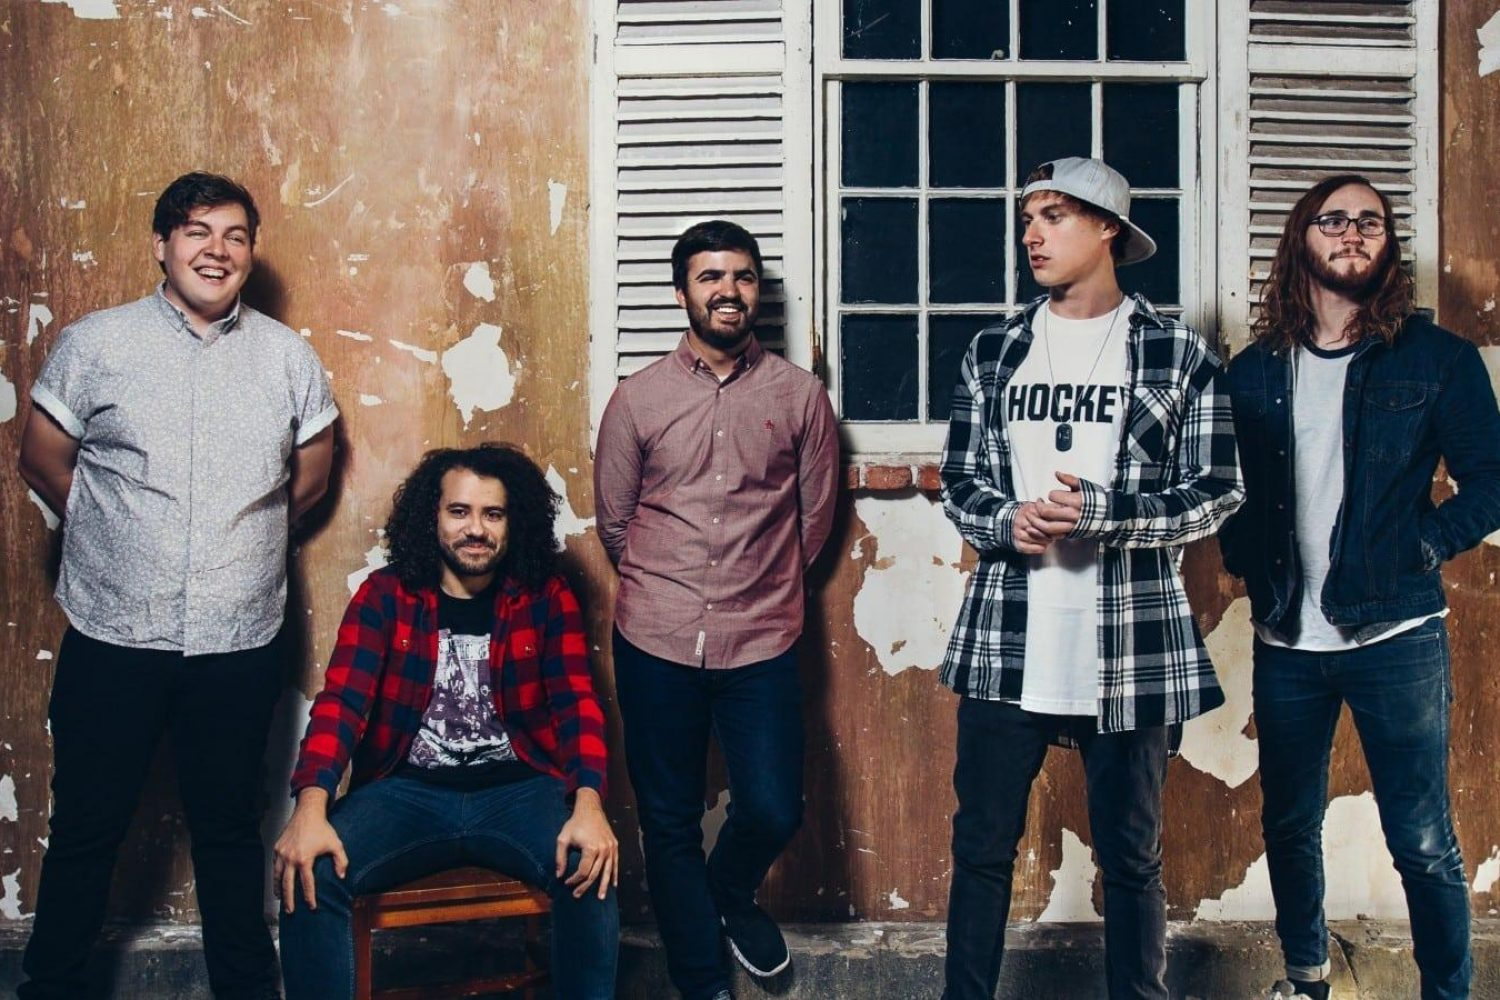 State Champs to release fancy pants deluxe album with new songs